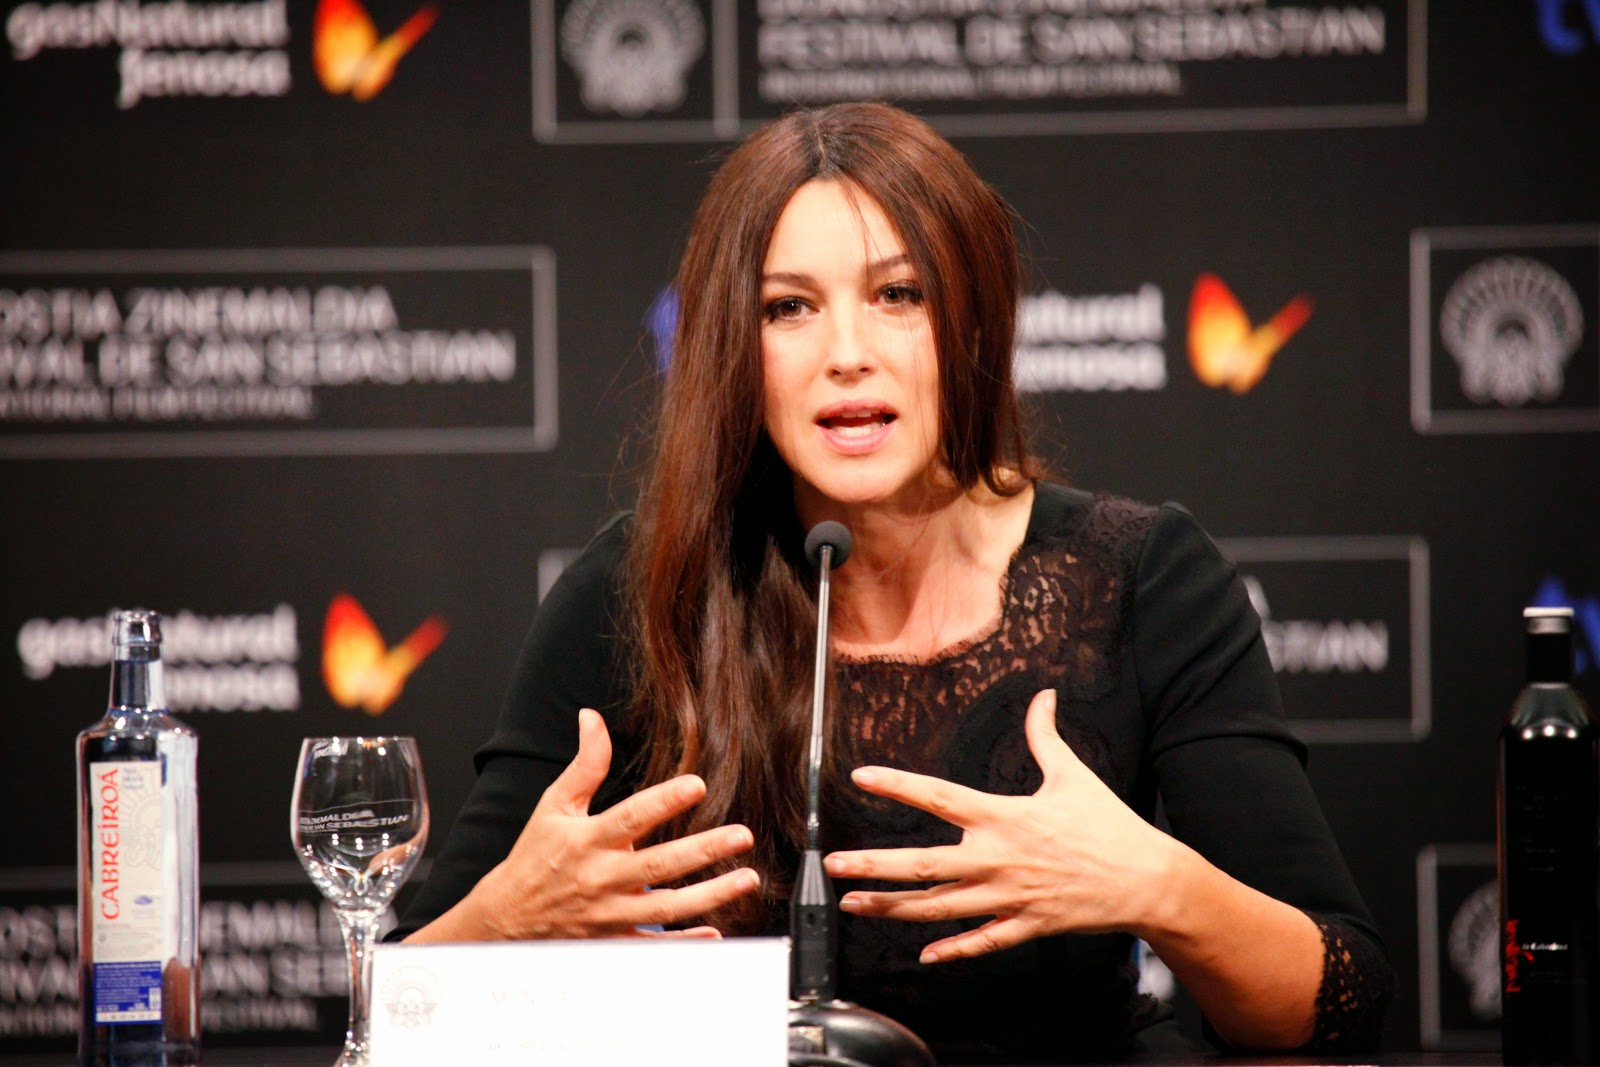 Specter Actress Monica Bellucci HD Images | Monica Bellucci is Oldest Bond Girl in new Film 'Spectre'